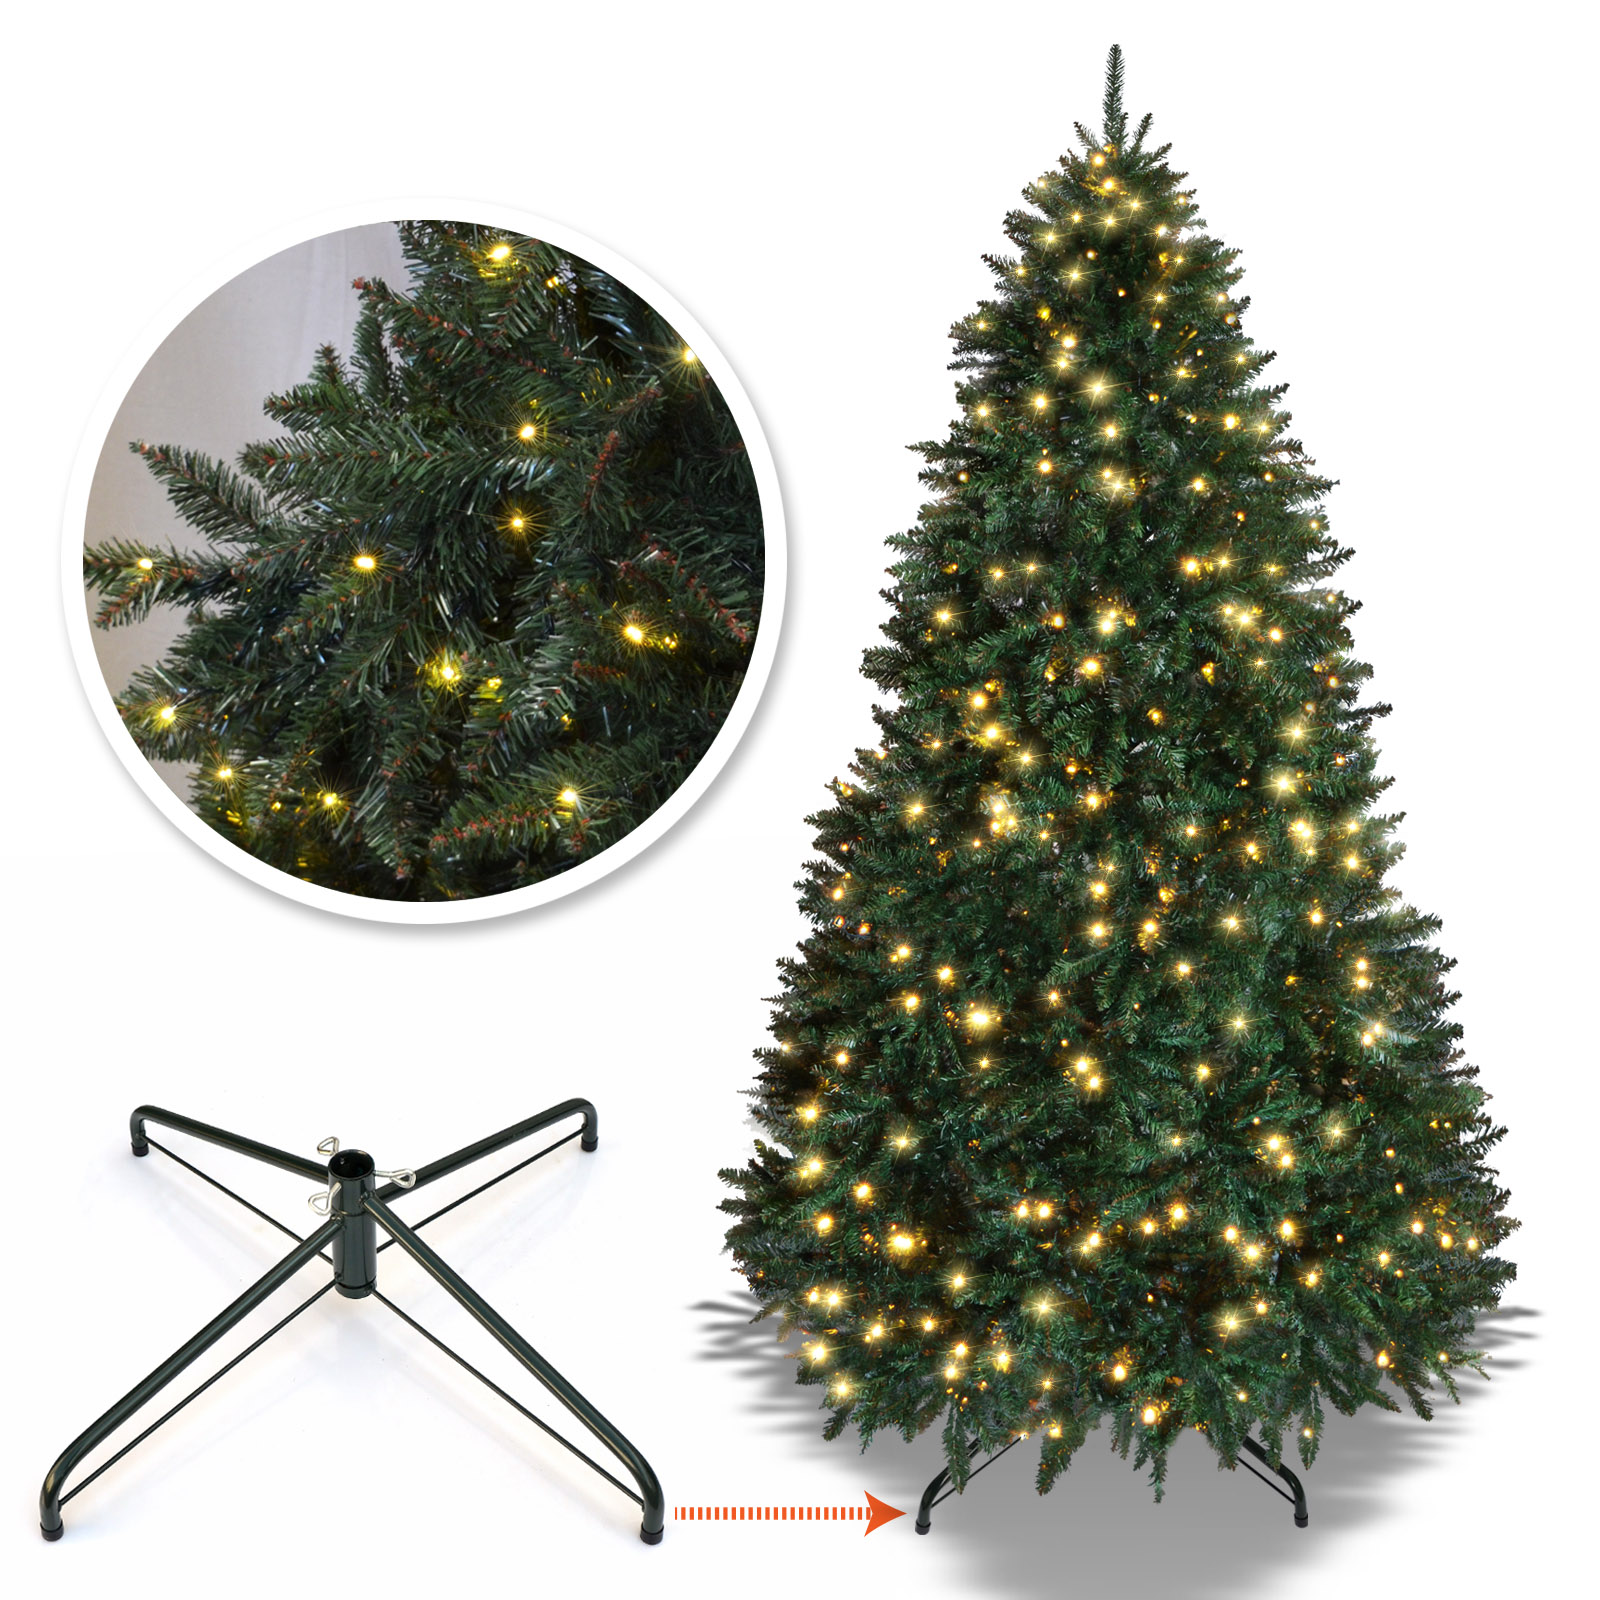 Strong Camel 6.5 /7 /7.5 ft Artificial Christmas Tree with Metal Stand Full Tree Xmas Holiday (7' with 700 Clear Lights and 2154 tips)